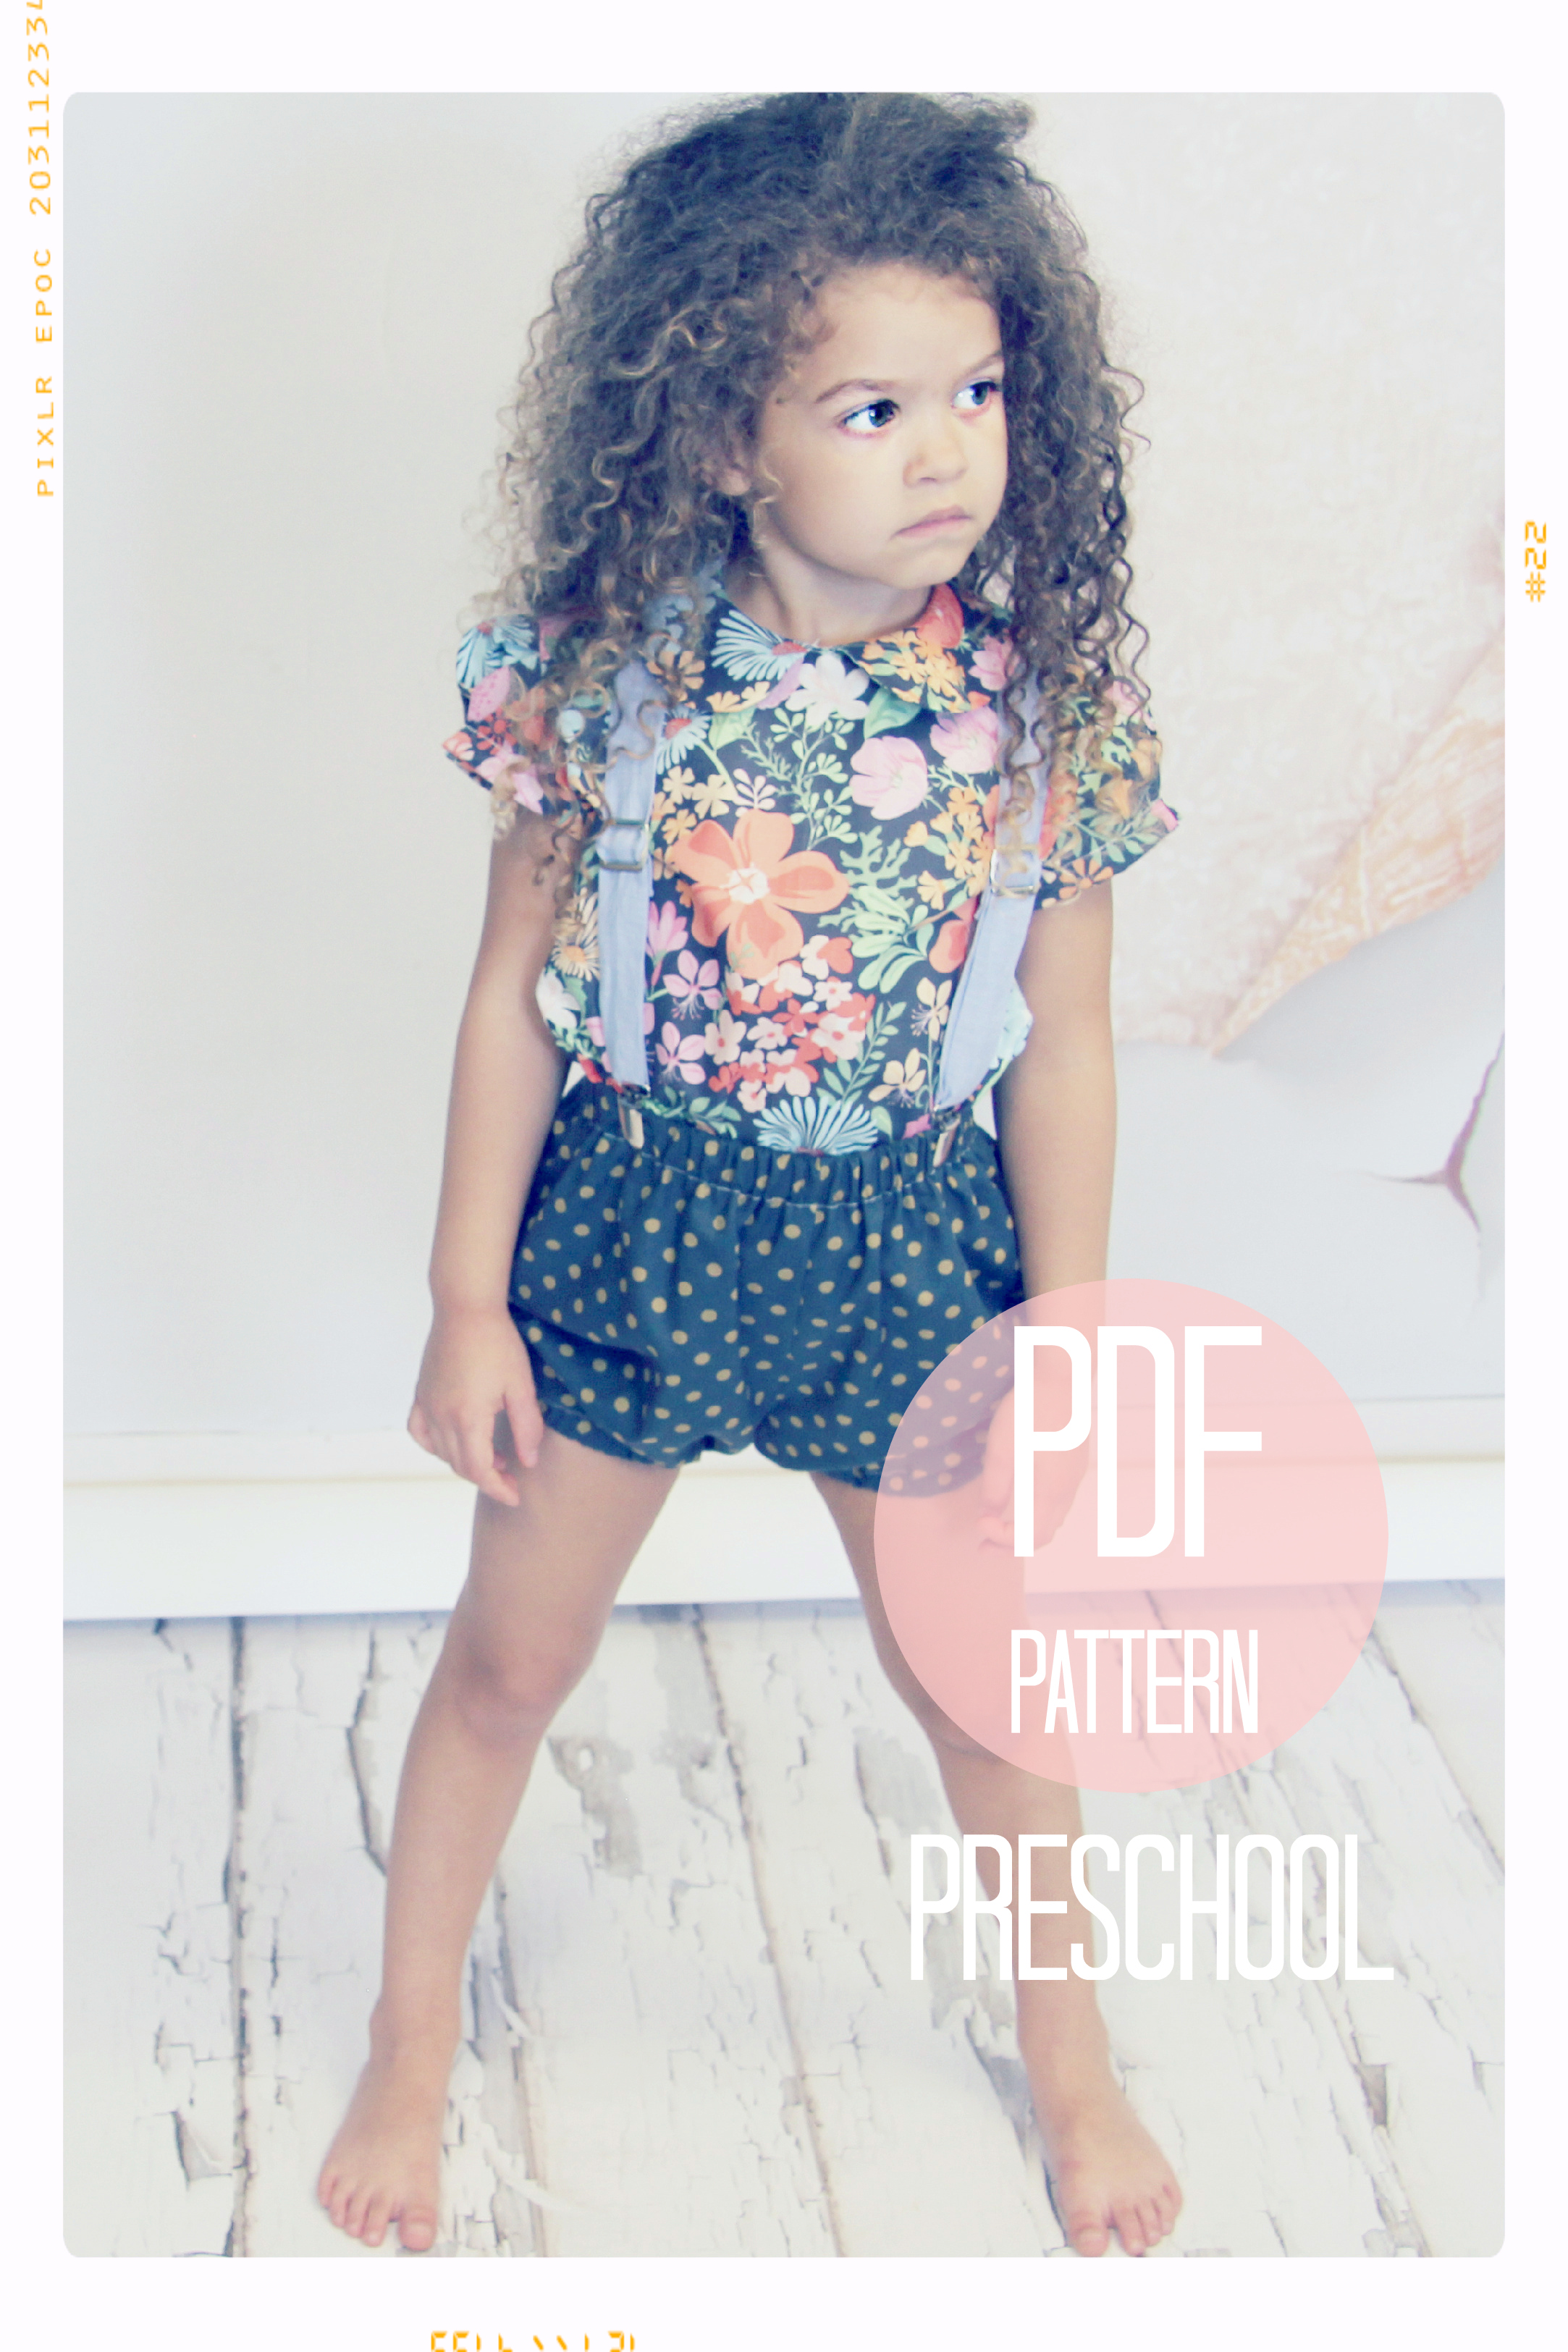 Bloomer Bubble Shorts Sewing Pattern - Preschool (sizes 4T, 5, 6)